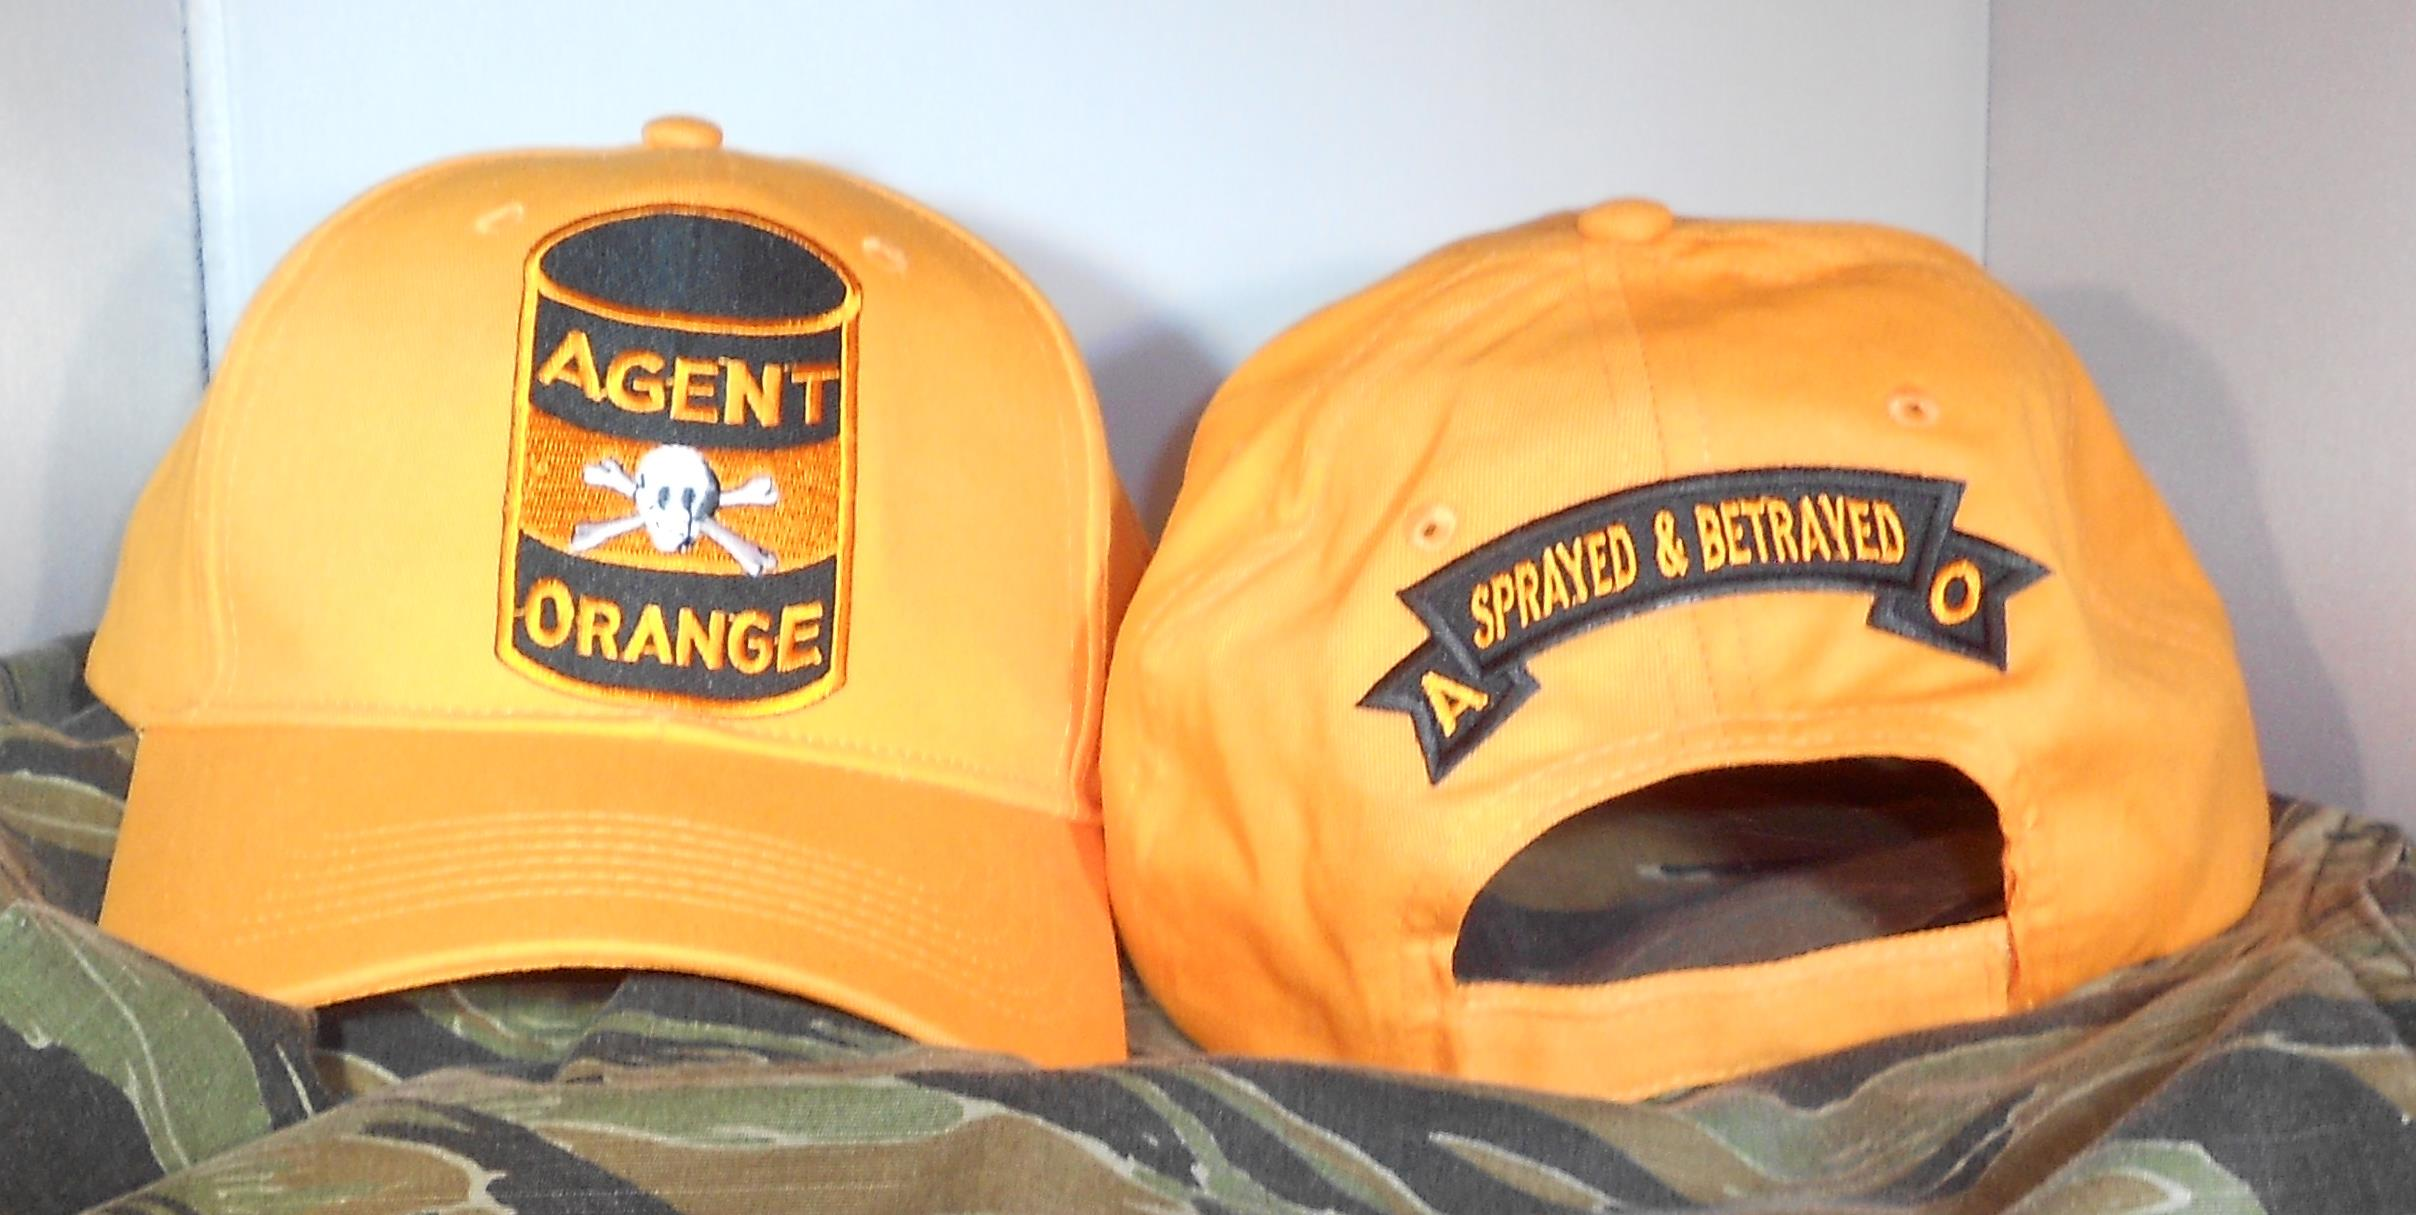 AGENT ORANGE 55 GALLON DRUM ORANGE HATS